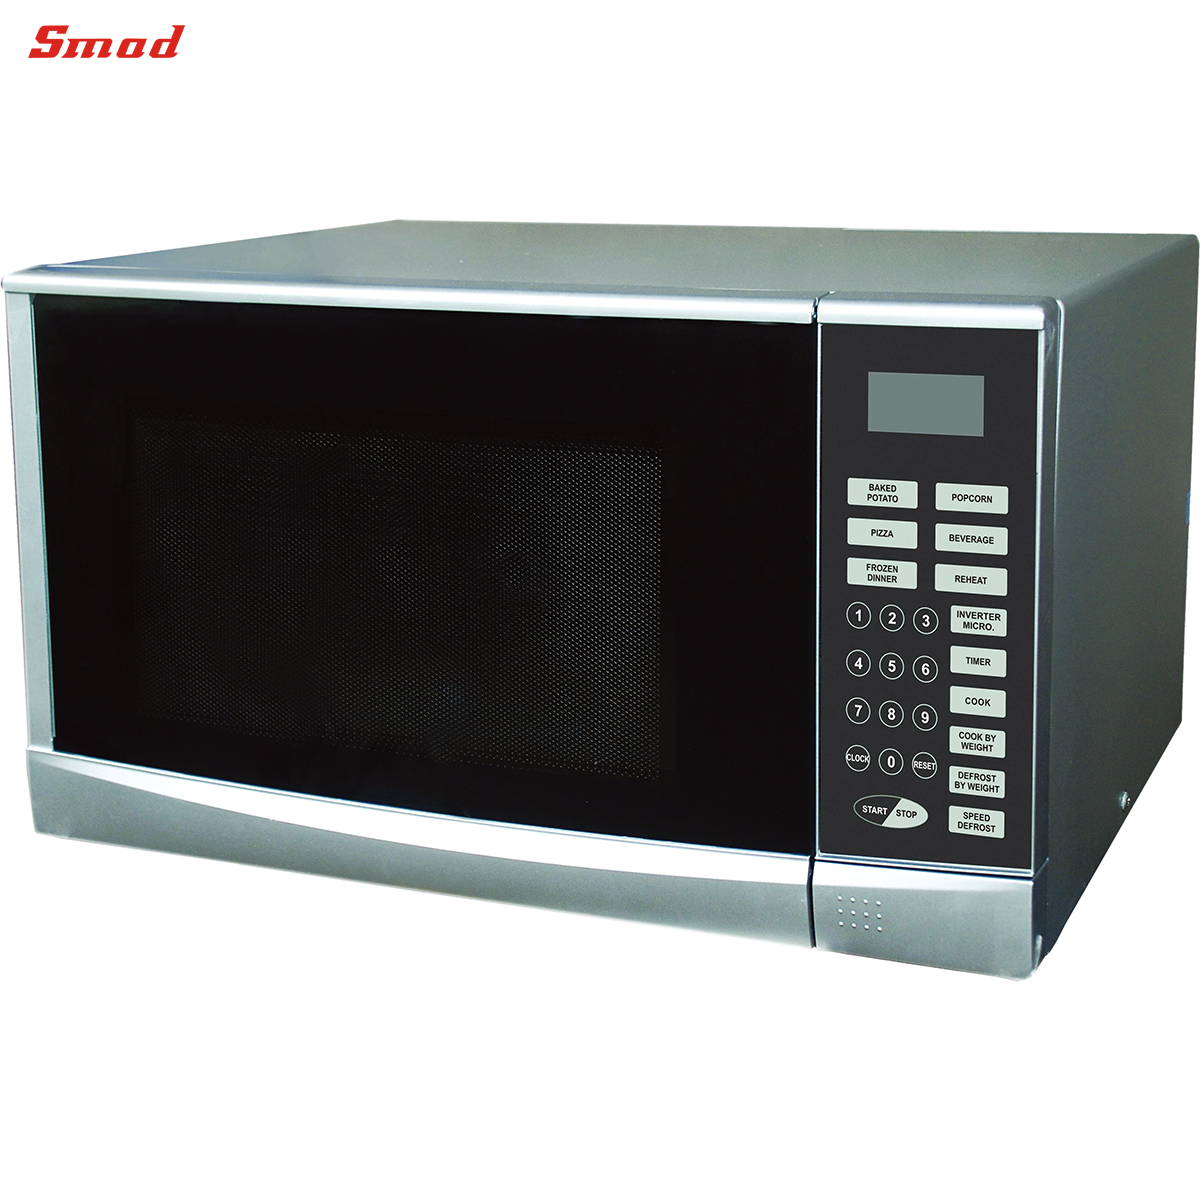 Countertop Cooking Appliances Kitchen Cooking Appliances 30l Portable Led Display Countertop Microwave Oven Buy Microwave Oven Counter Top Microwave Oven Portable Microwave Oven